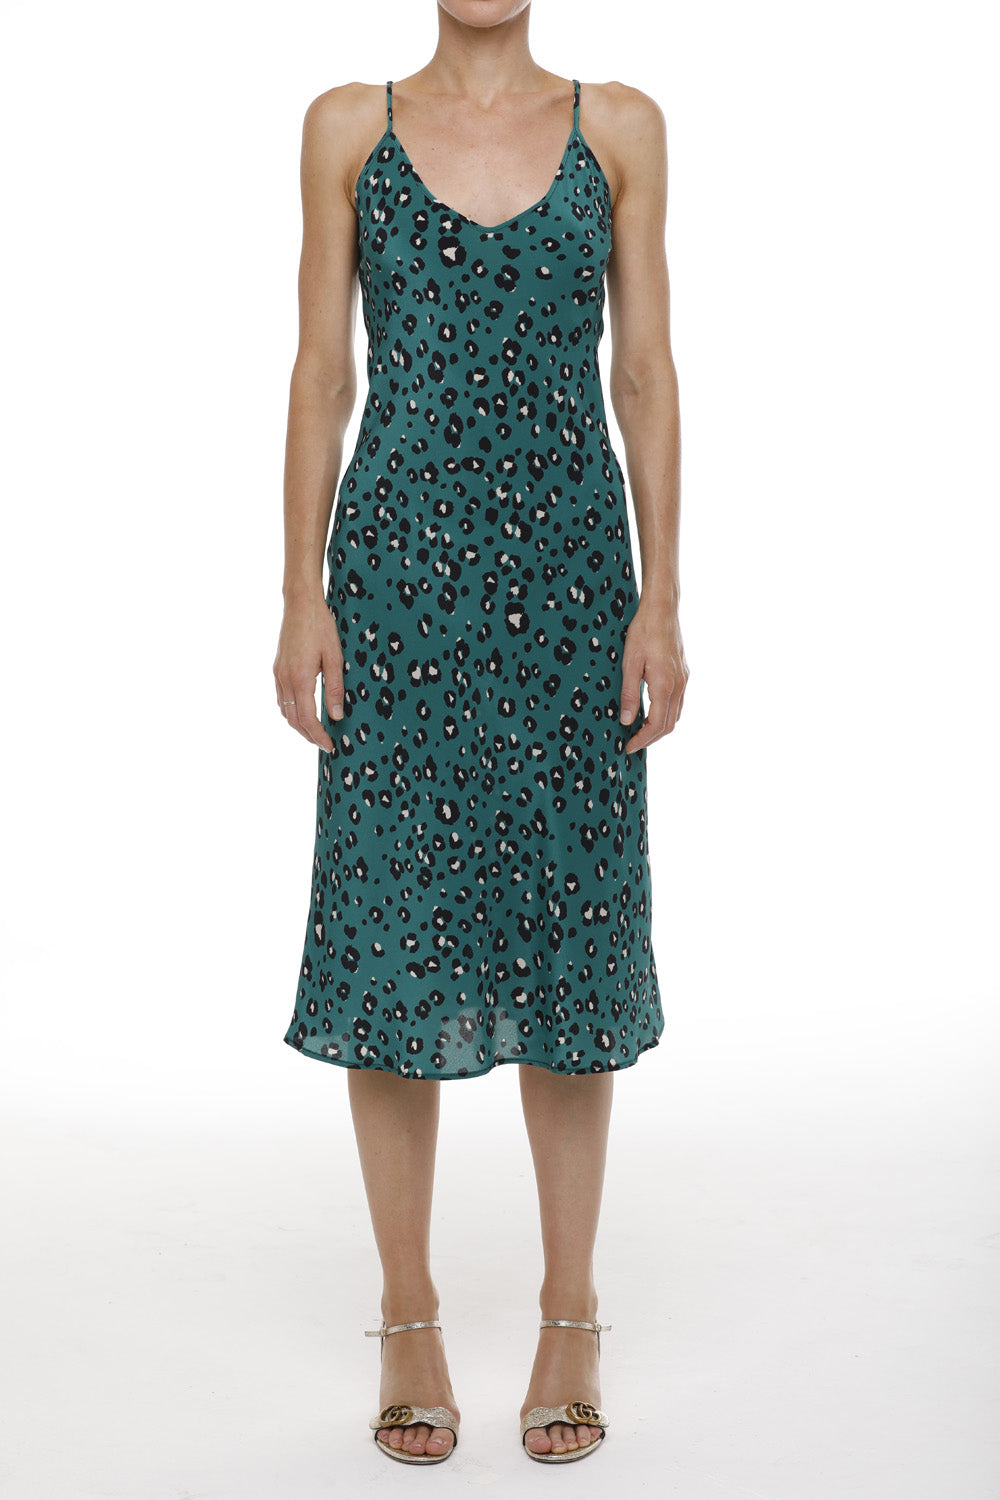 AMA New York Dress - Green Cheetah